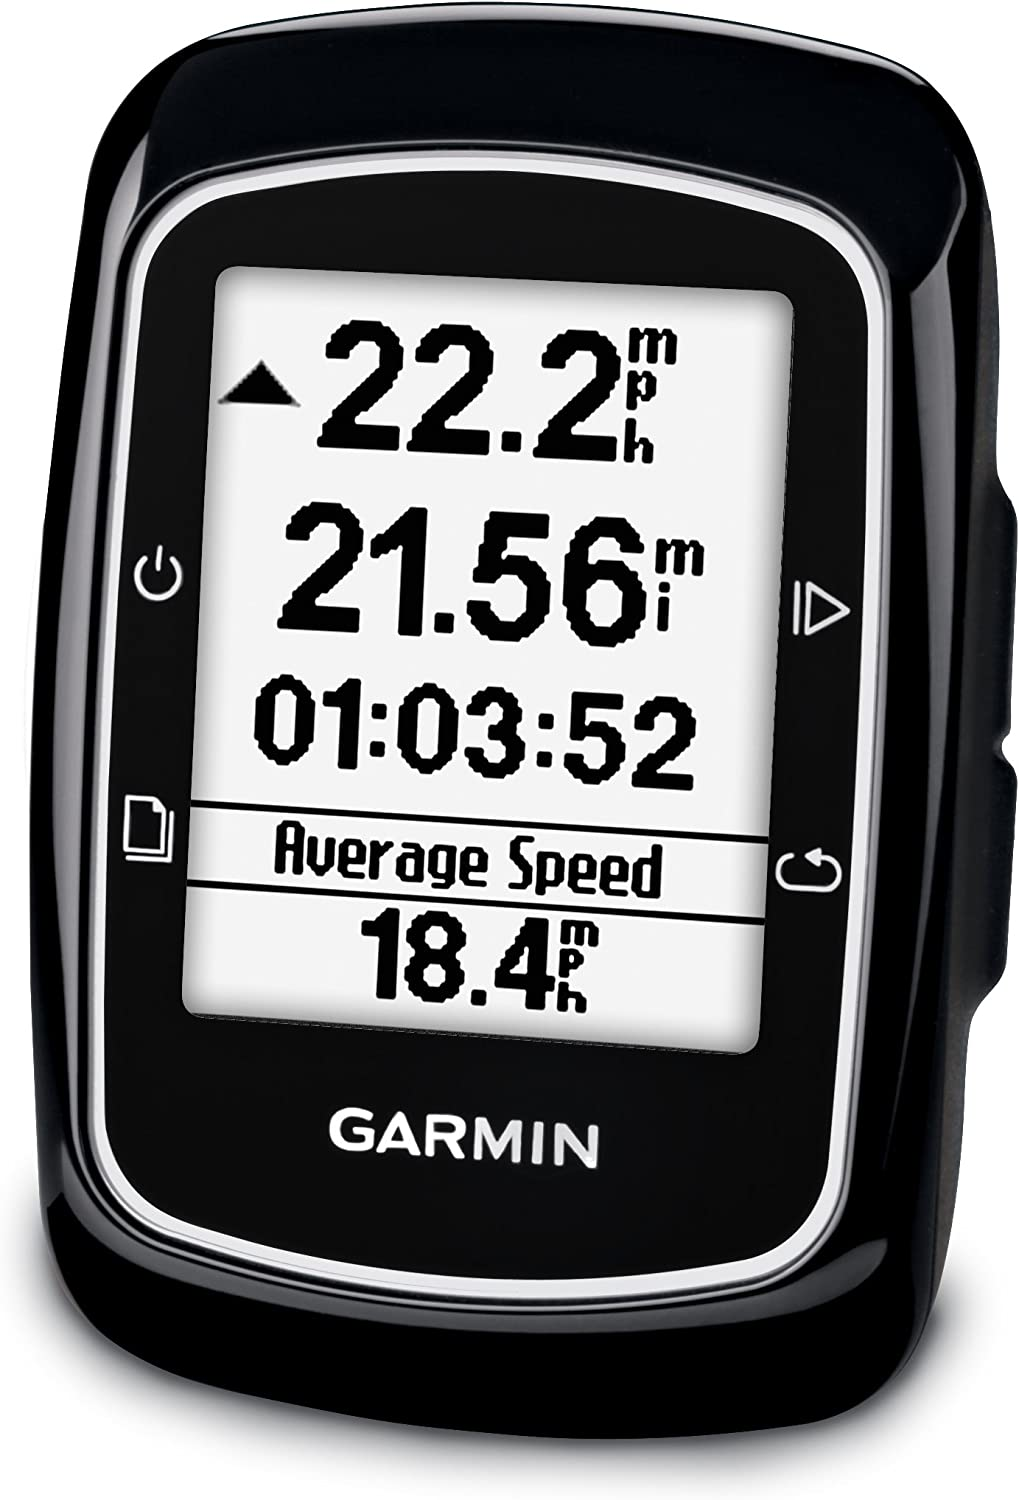 Garmin Edge 200 - Ciclocomputador con GPS: Amazon.es: Deportes y ...